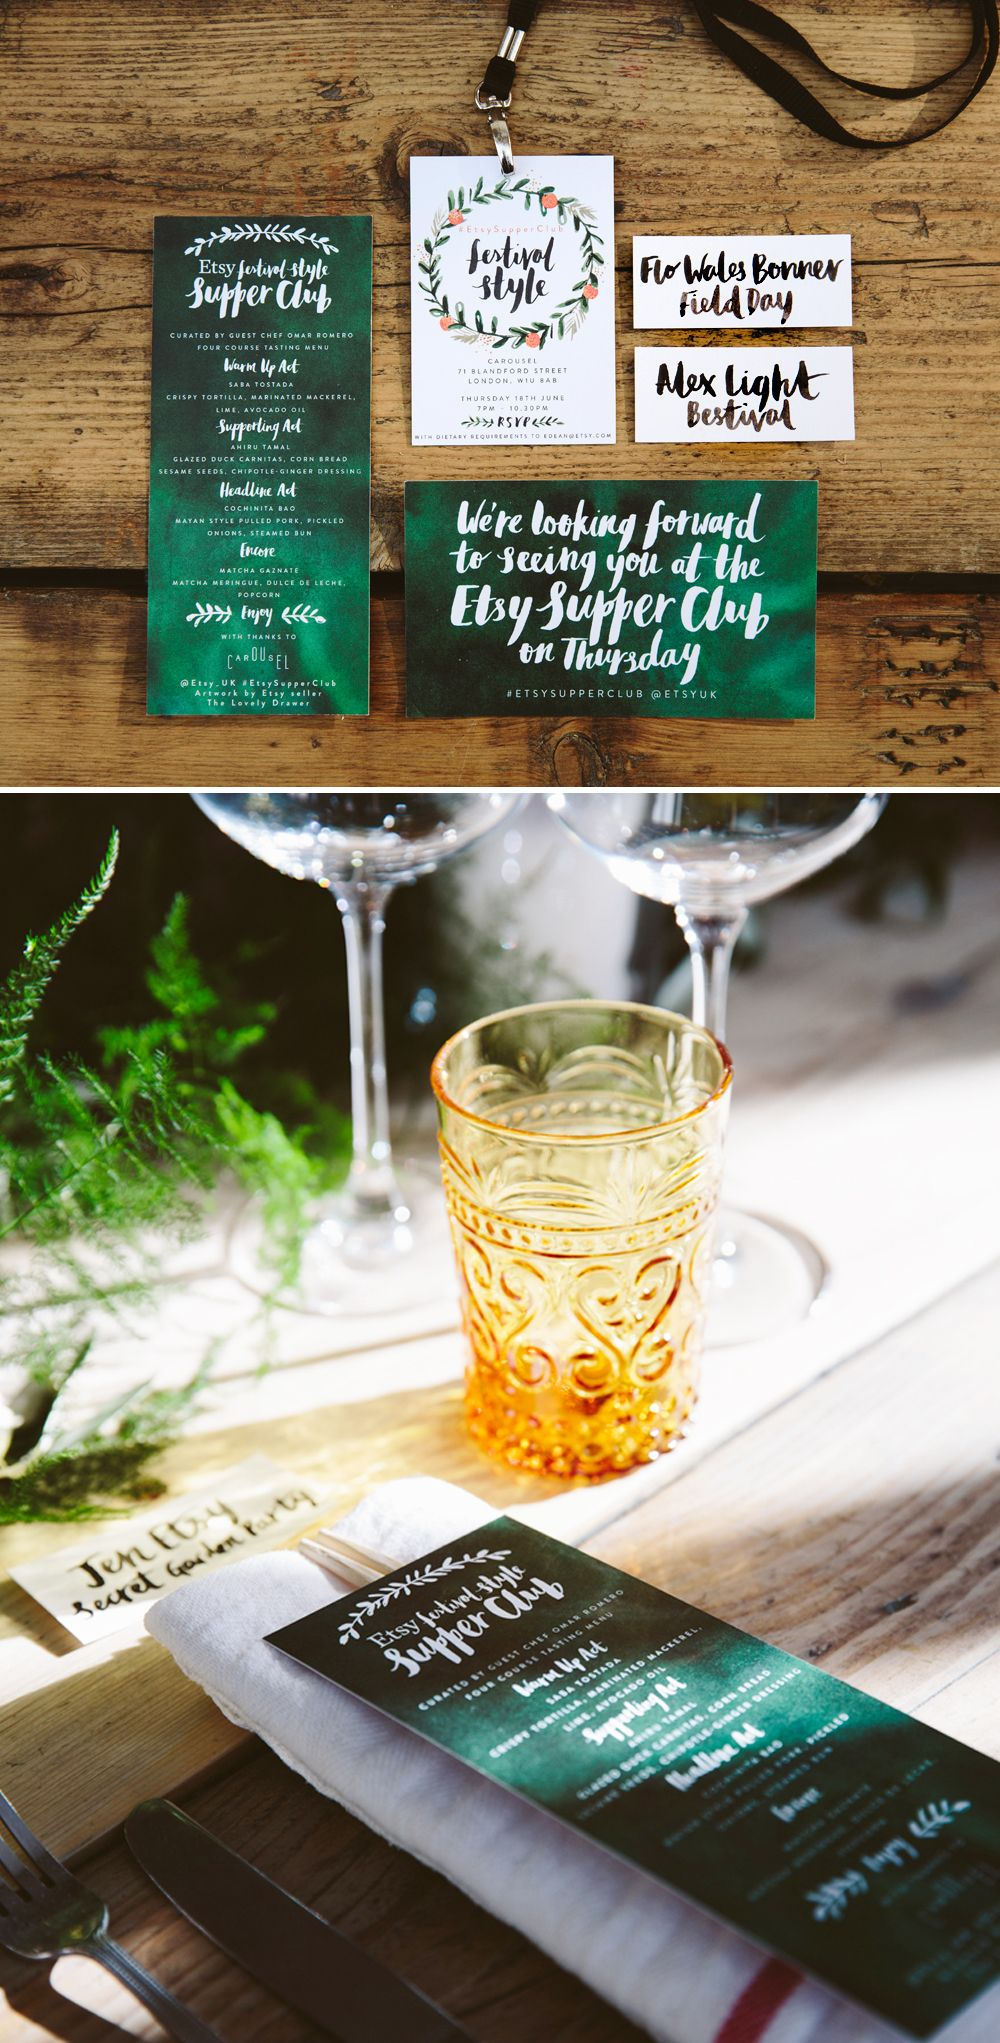 Etsy Supper Club | Typography - Lettering | Supper club, Etsy